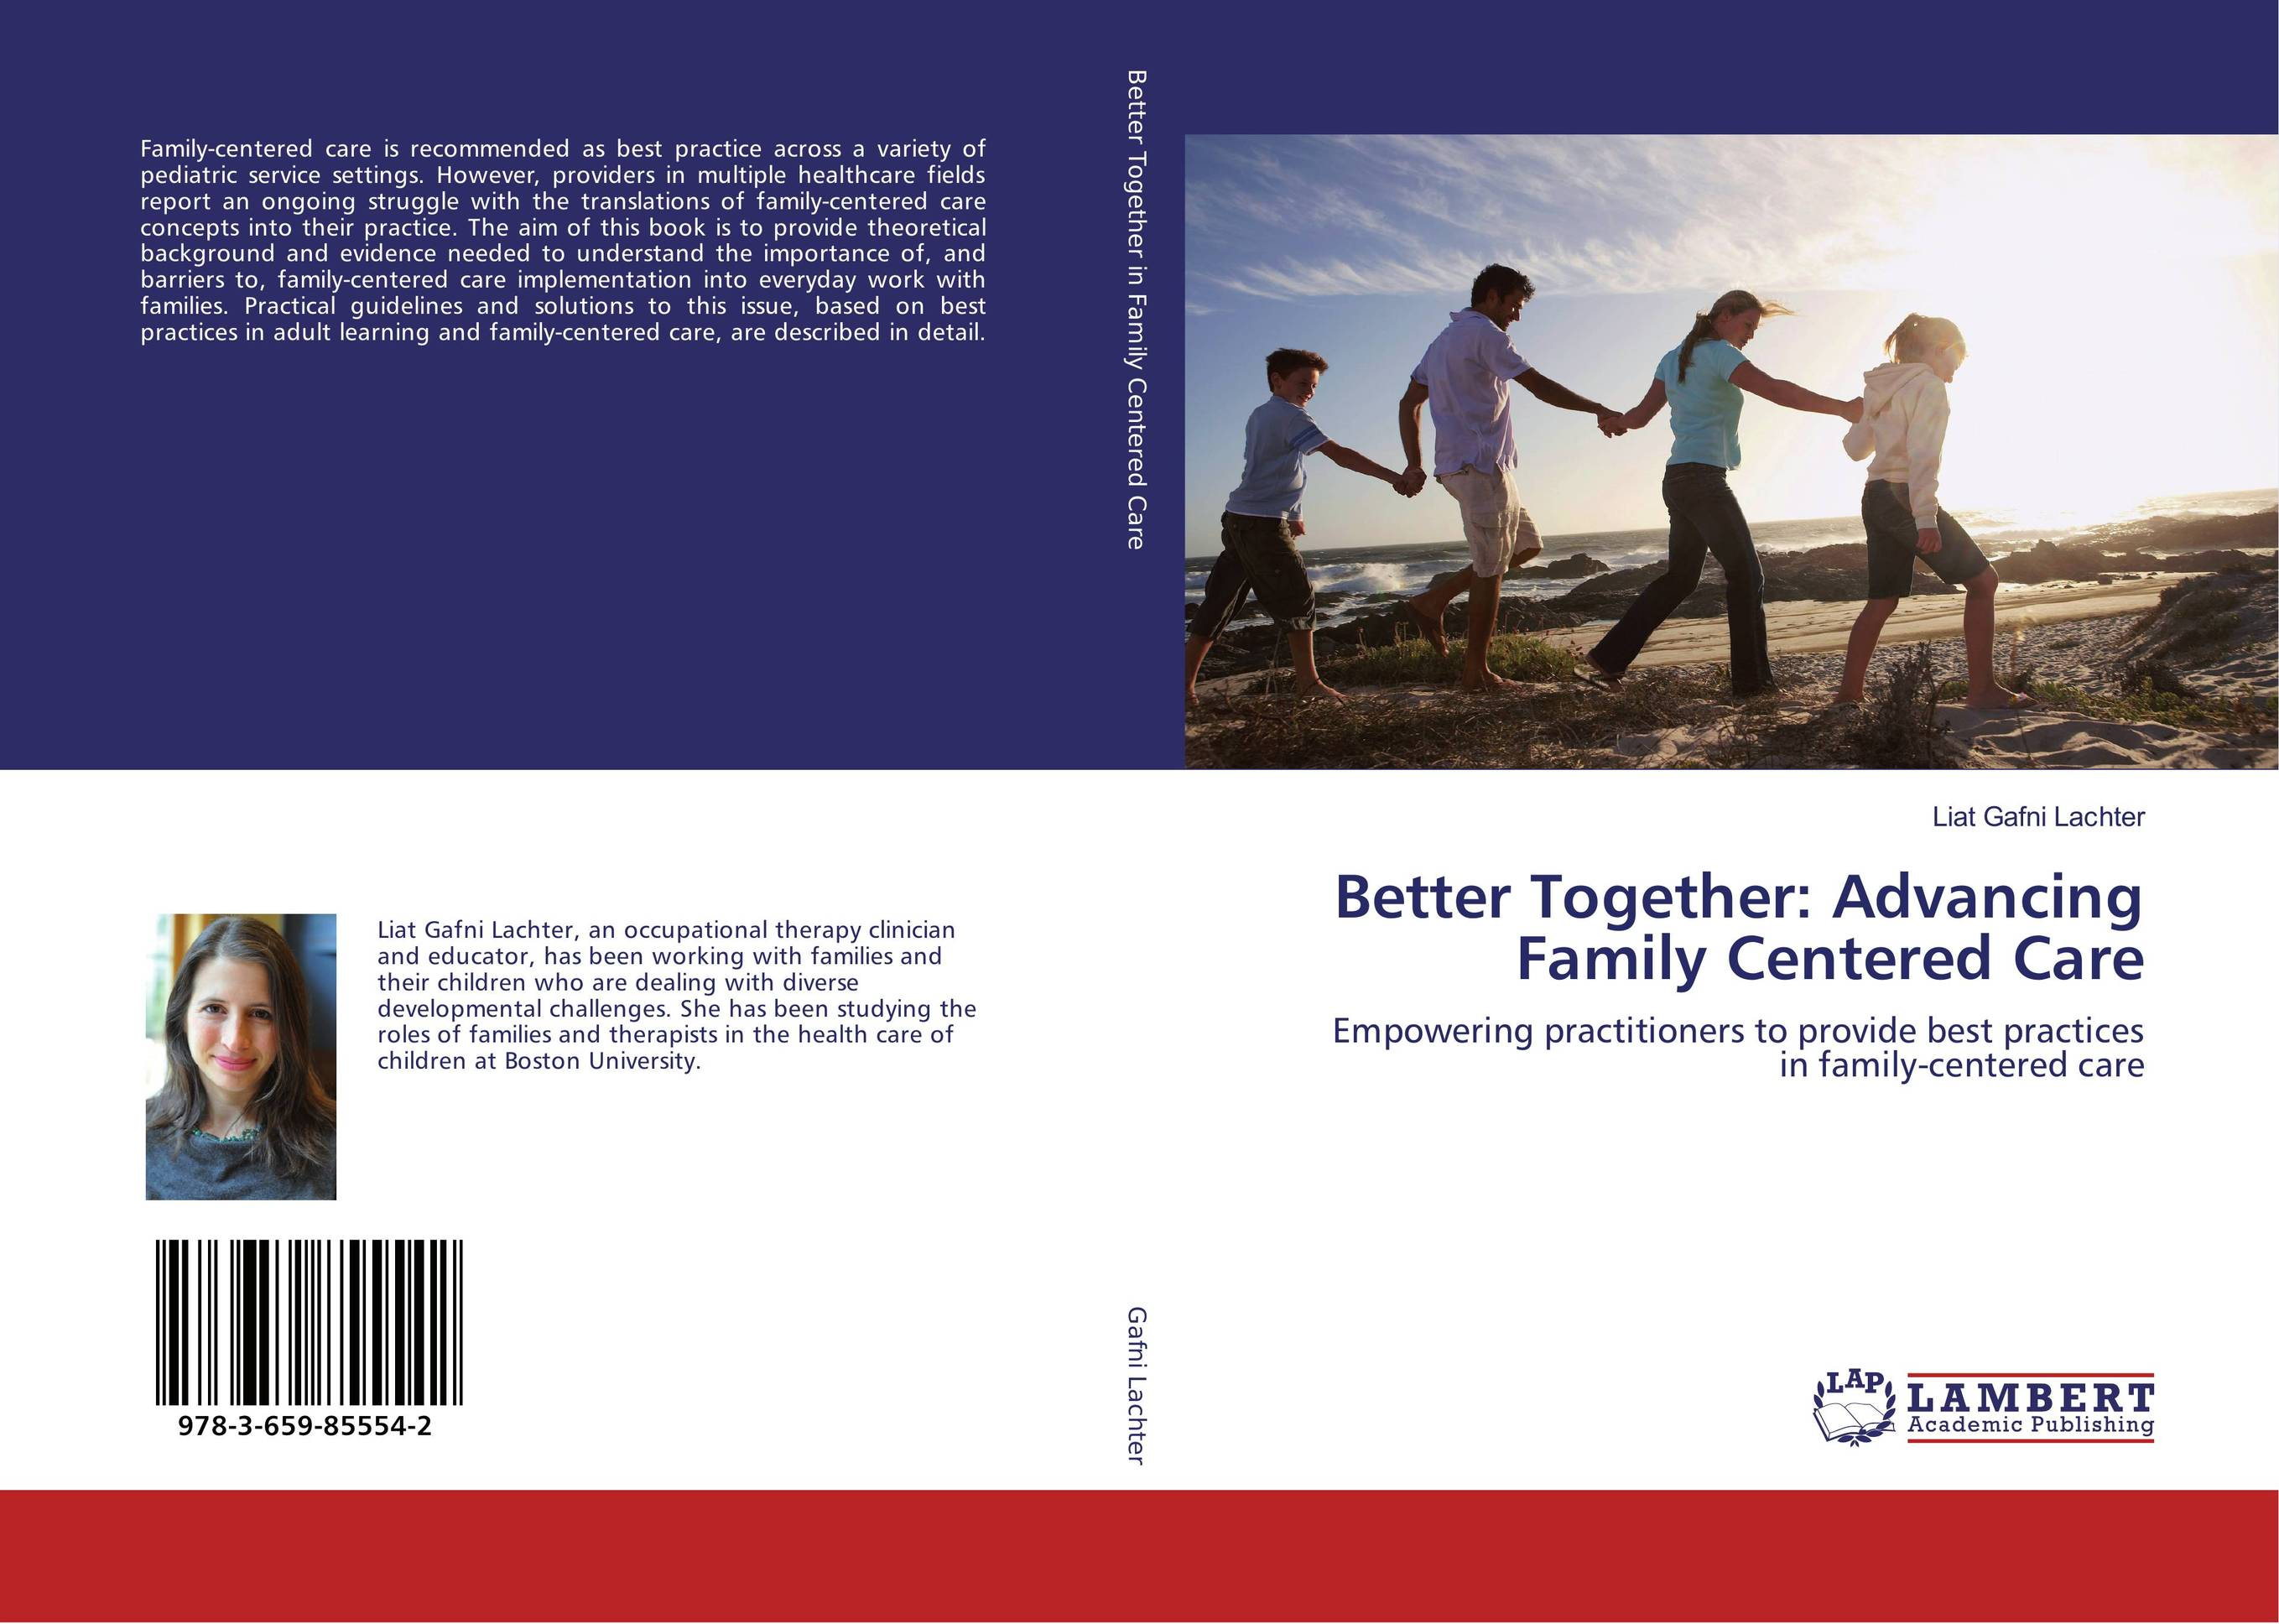 Better Together: Advancing Family Centered Care coin a low cost user centered iptv service